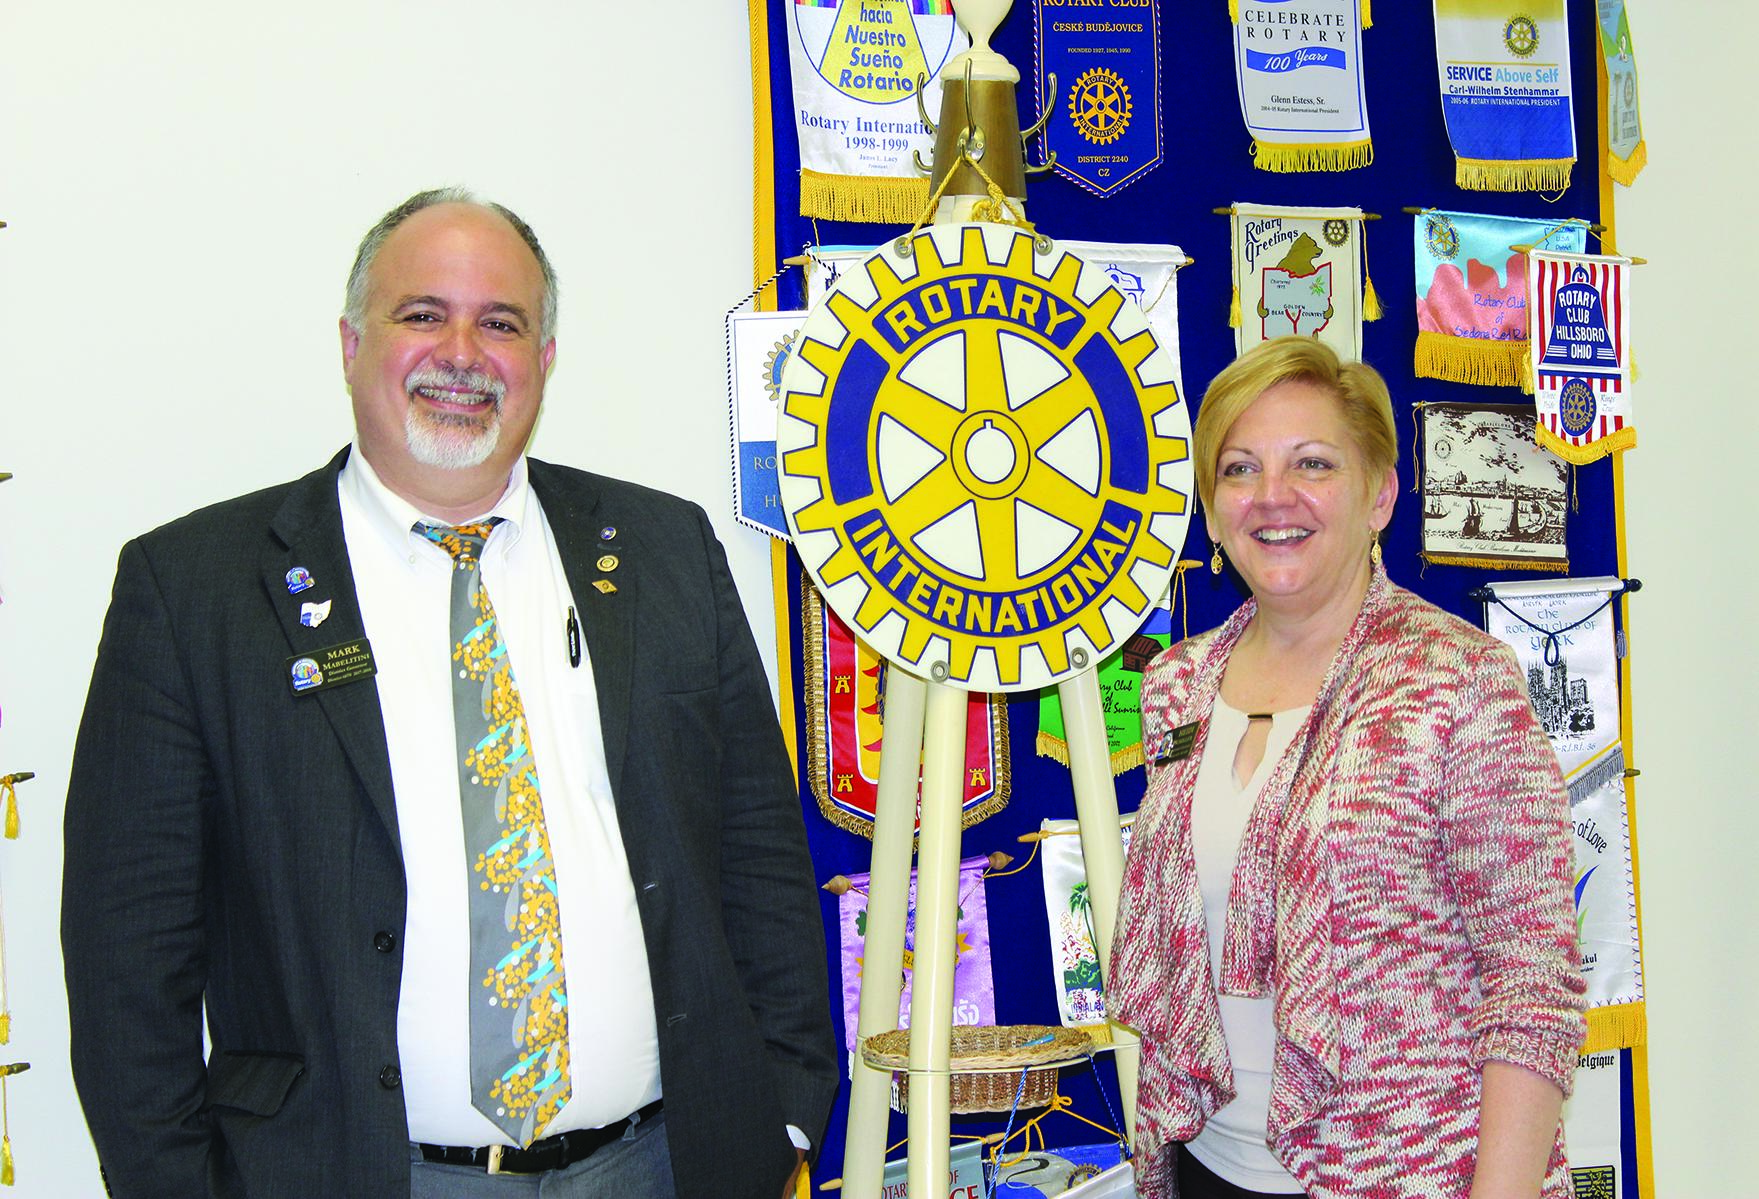 Rotary District 6670 Governor Mark Mabelitini visited the Batavia Rotary Club on August 1 with Assistant Governor Heidi Schiller.  Sheila Hinton, also a Rotary Assistant Governor, was in attendance but is not pictured.